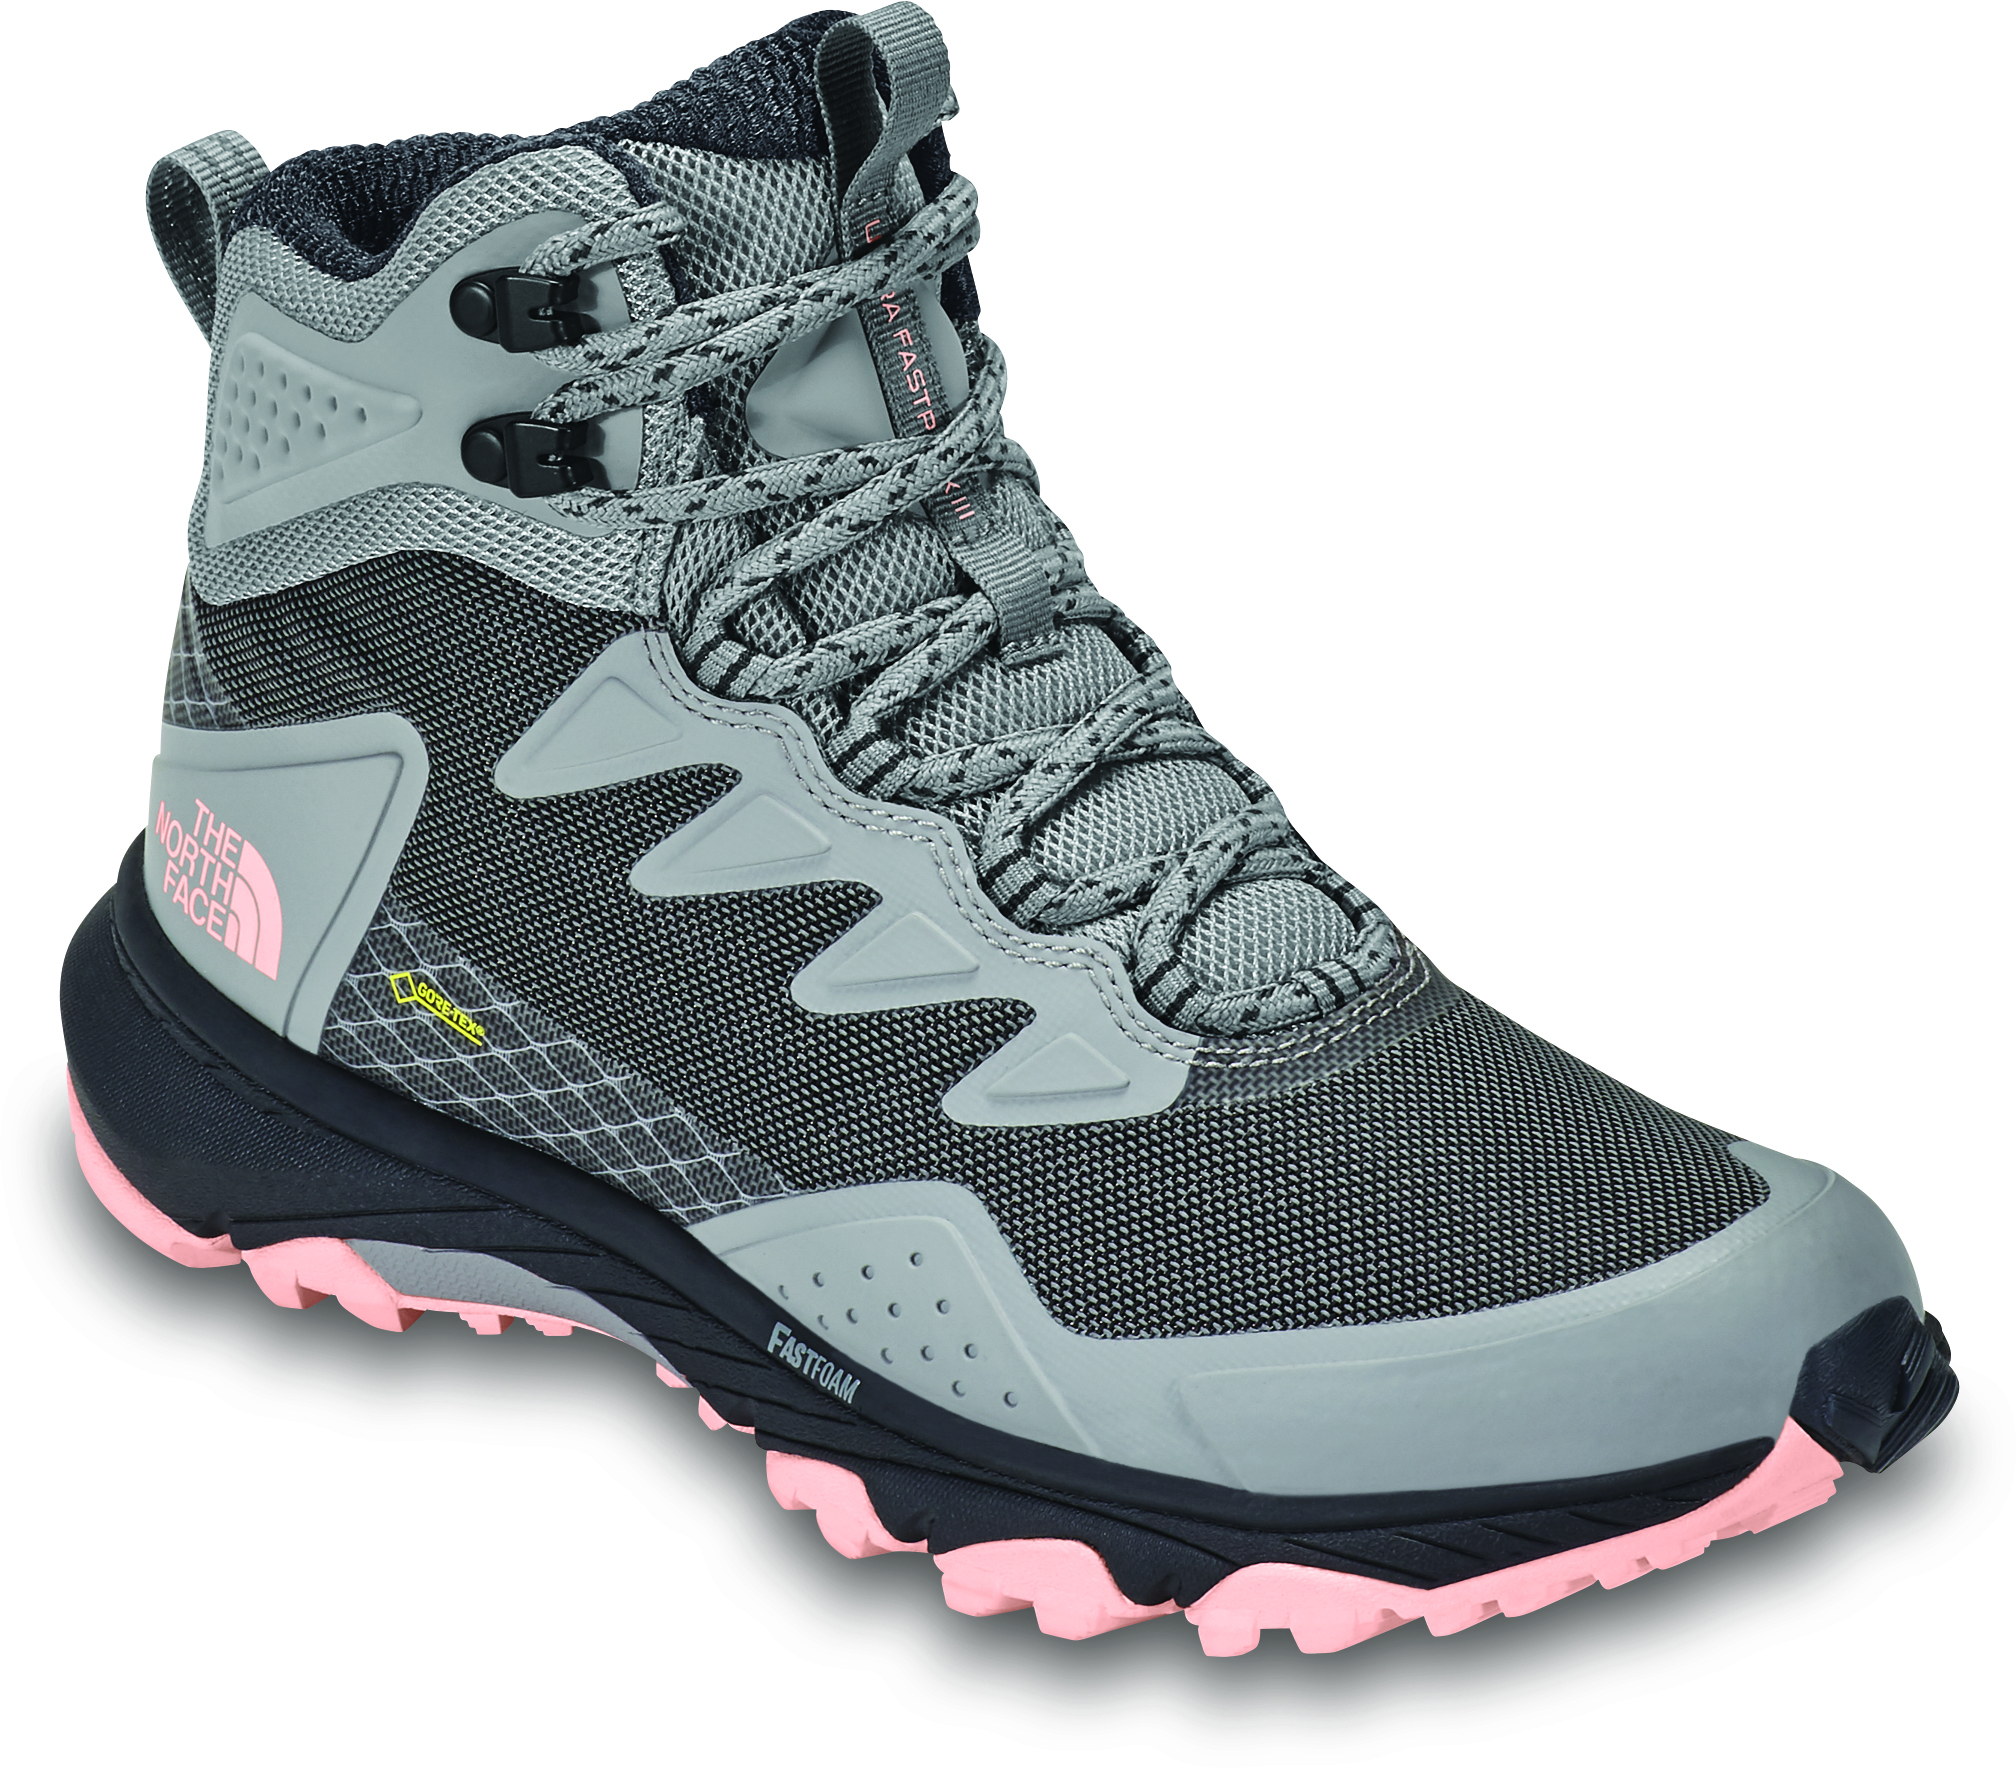 e53c3c10c28f The North Face Ultra Fastpack III Mid Gore-Tex Light Trail Shoes ...